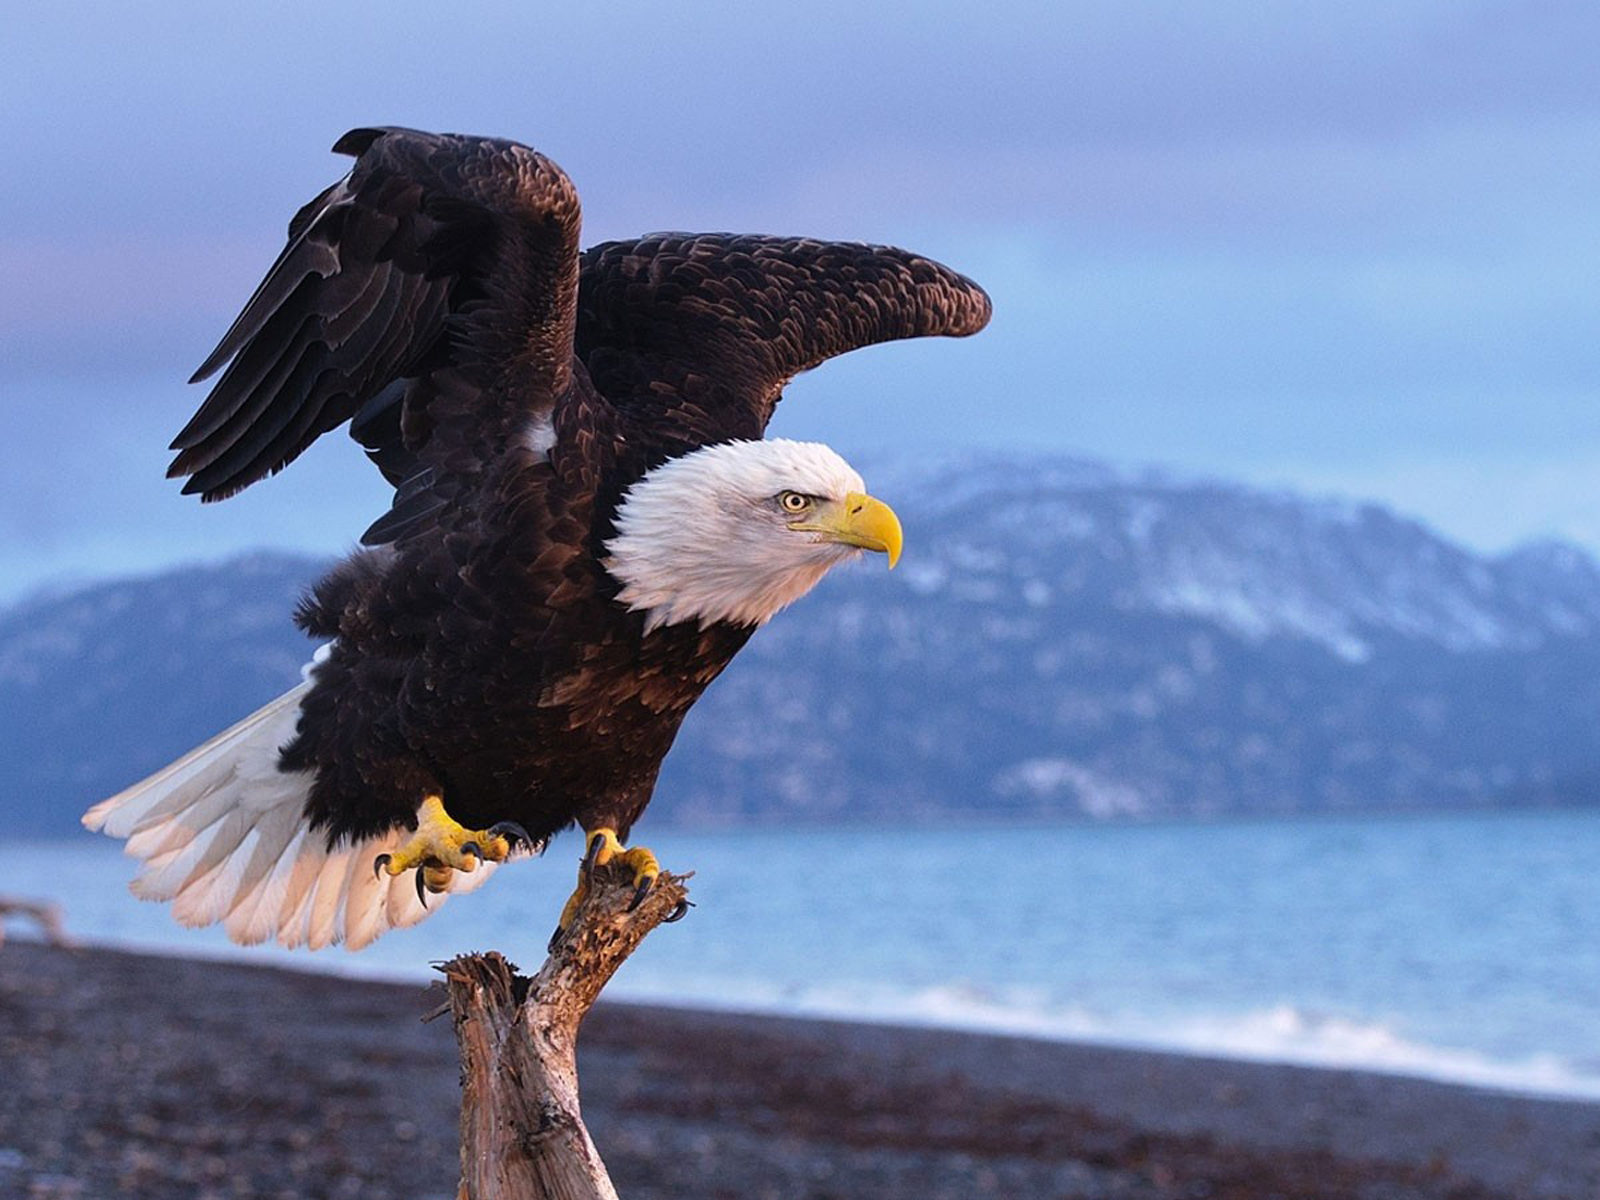 Orange Iphone X Wallpaper Bald Eagle Life Expectancy 20 Years In The Wild Hd